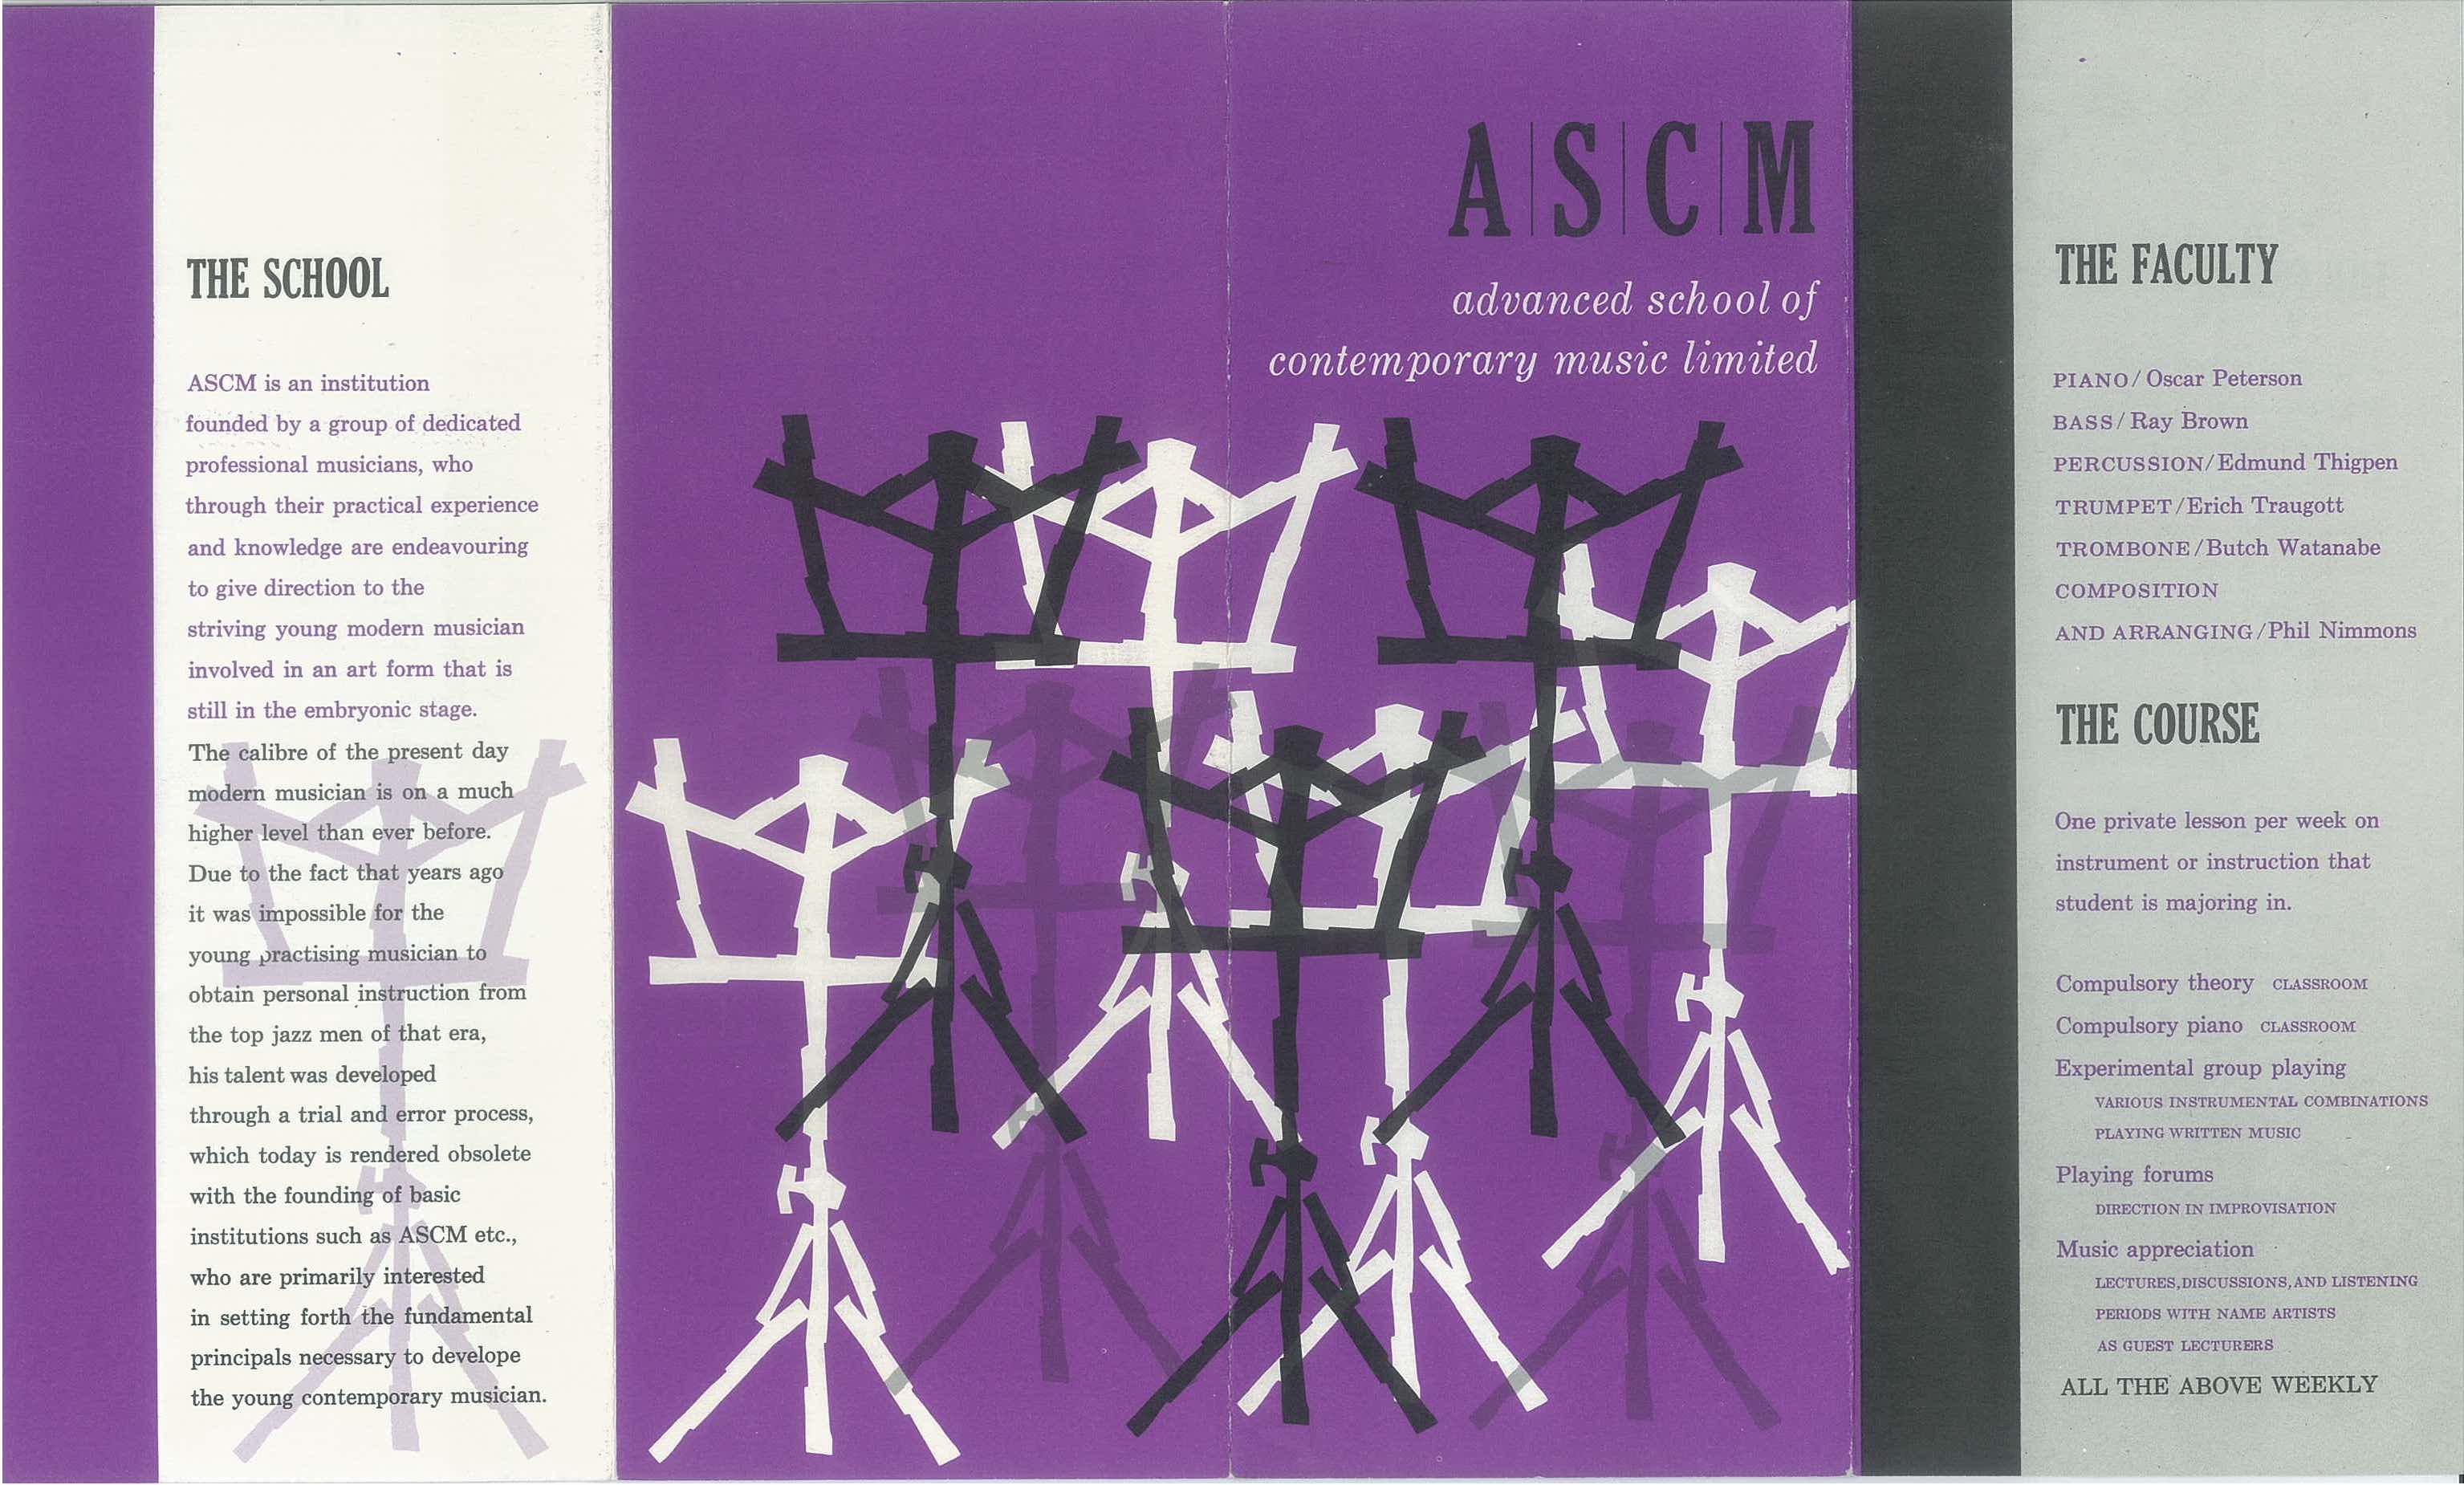 A purple, white, and black brochure for Oscar Peterson's Advanced School of Contemporary Music Limited